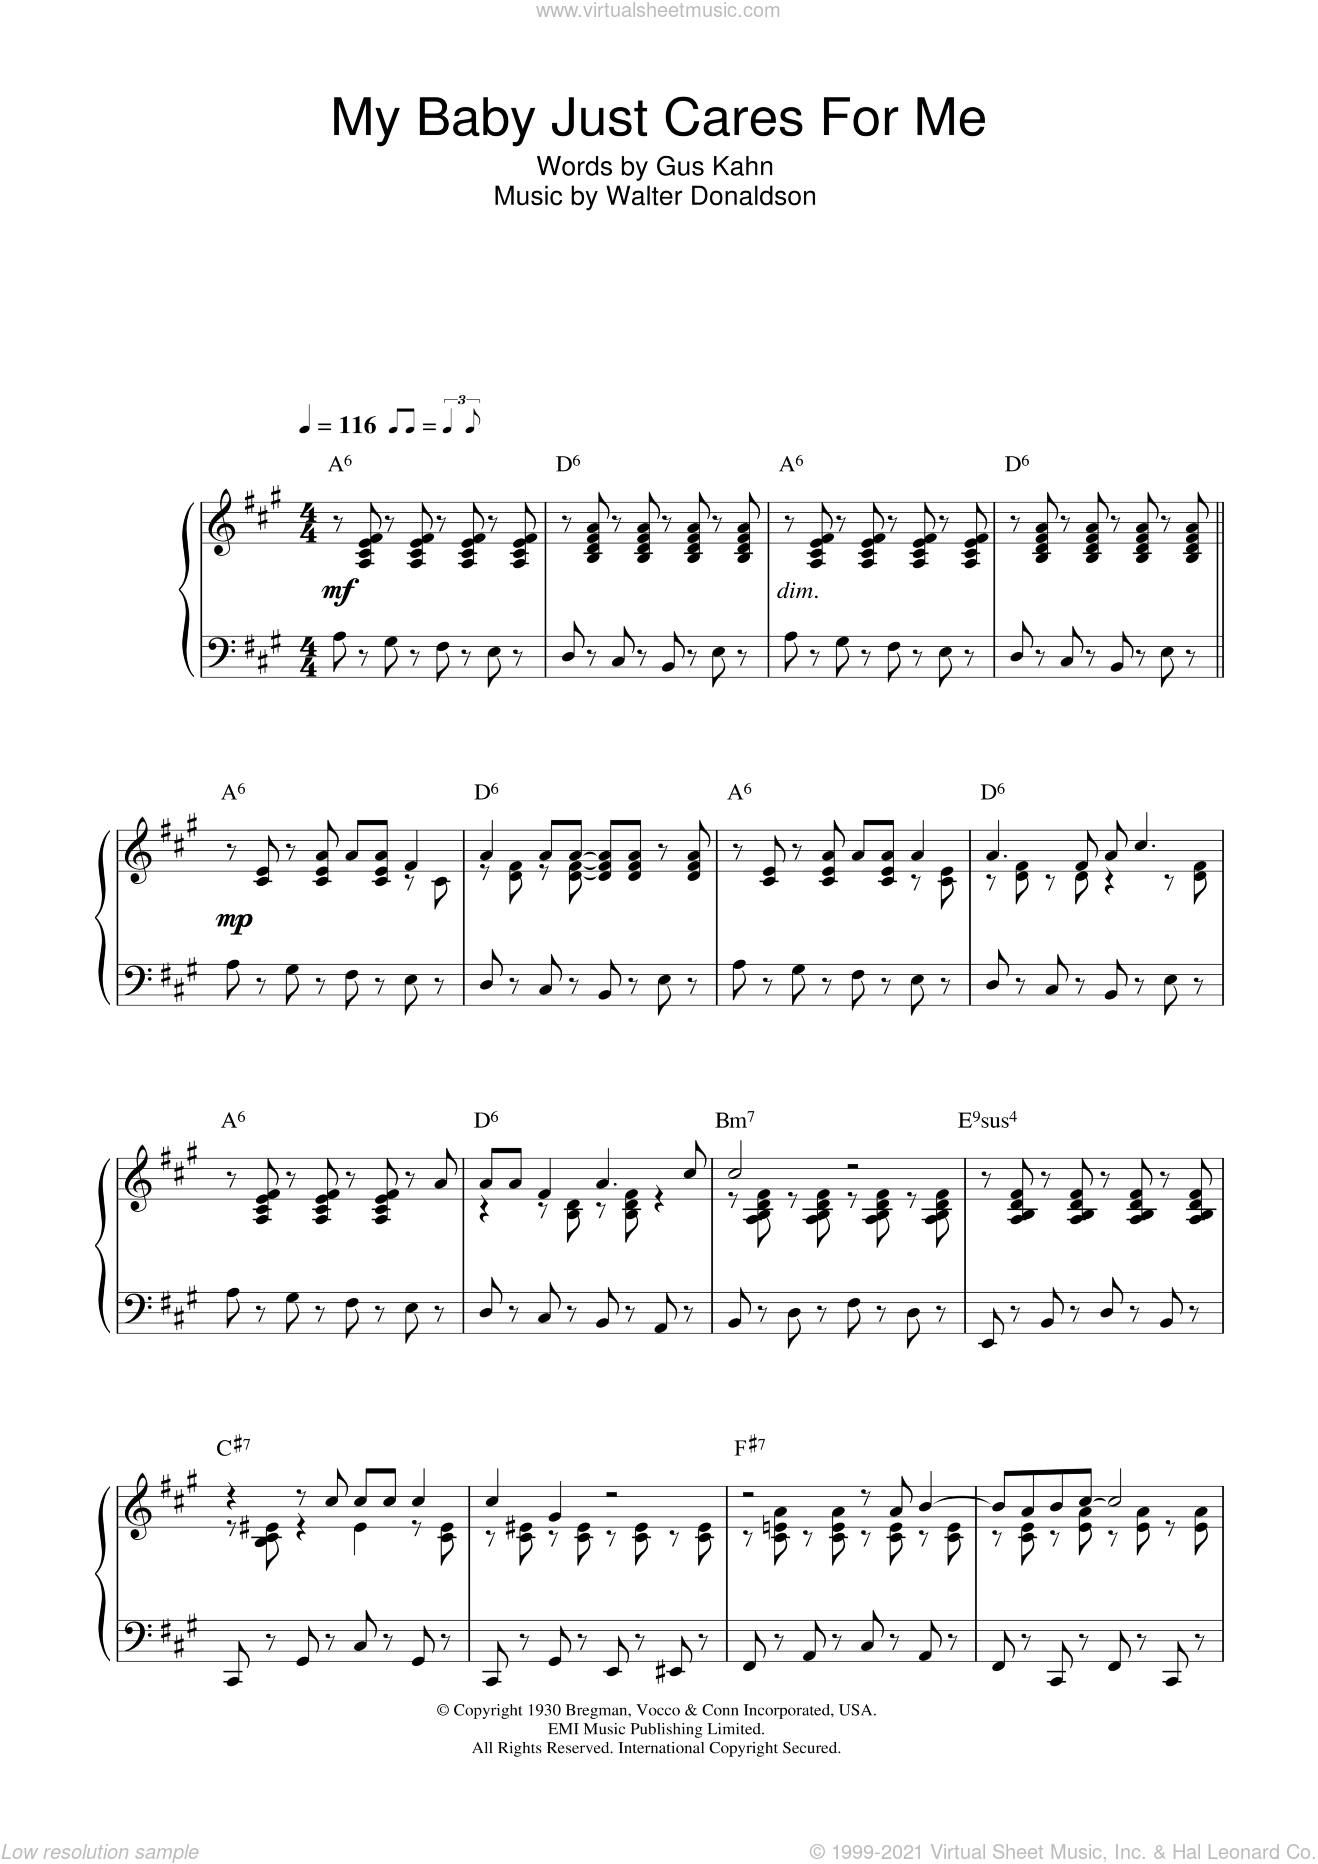 My Baby Just Cares For Me sheet music for piano solo by Walter Donaldson, Nina Simone and Gus Kahn. Score Image Preview.